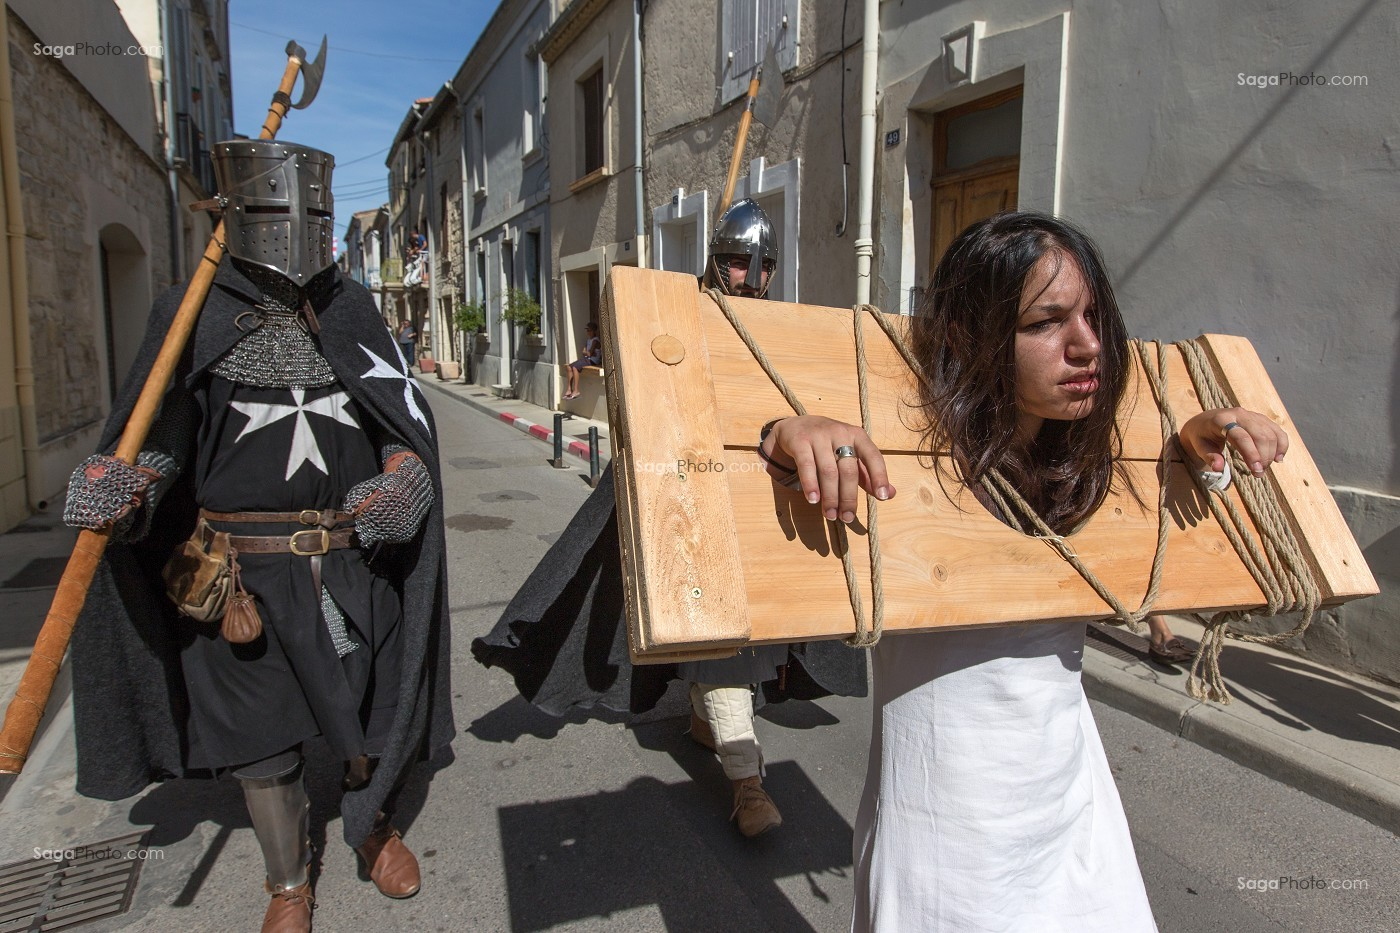 FETE DE LA SAINT-LOUIS, AIGUES-MORTES, GARD (30), FRANCE